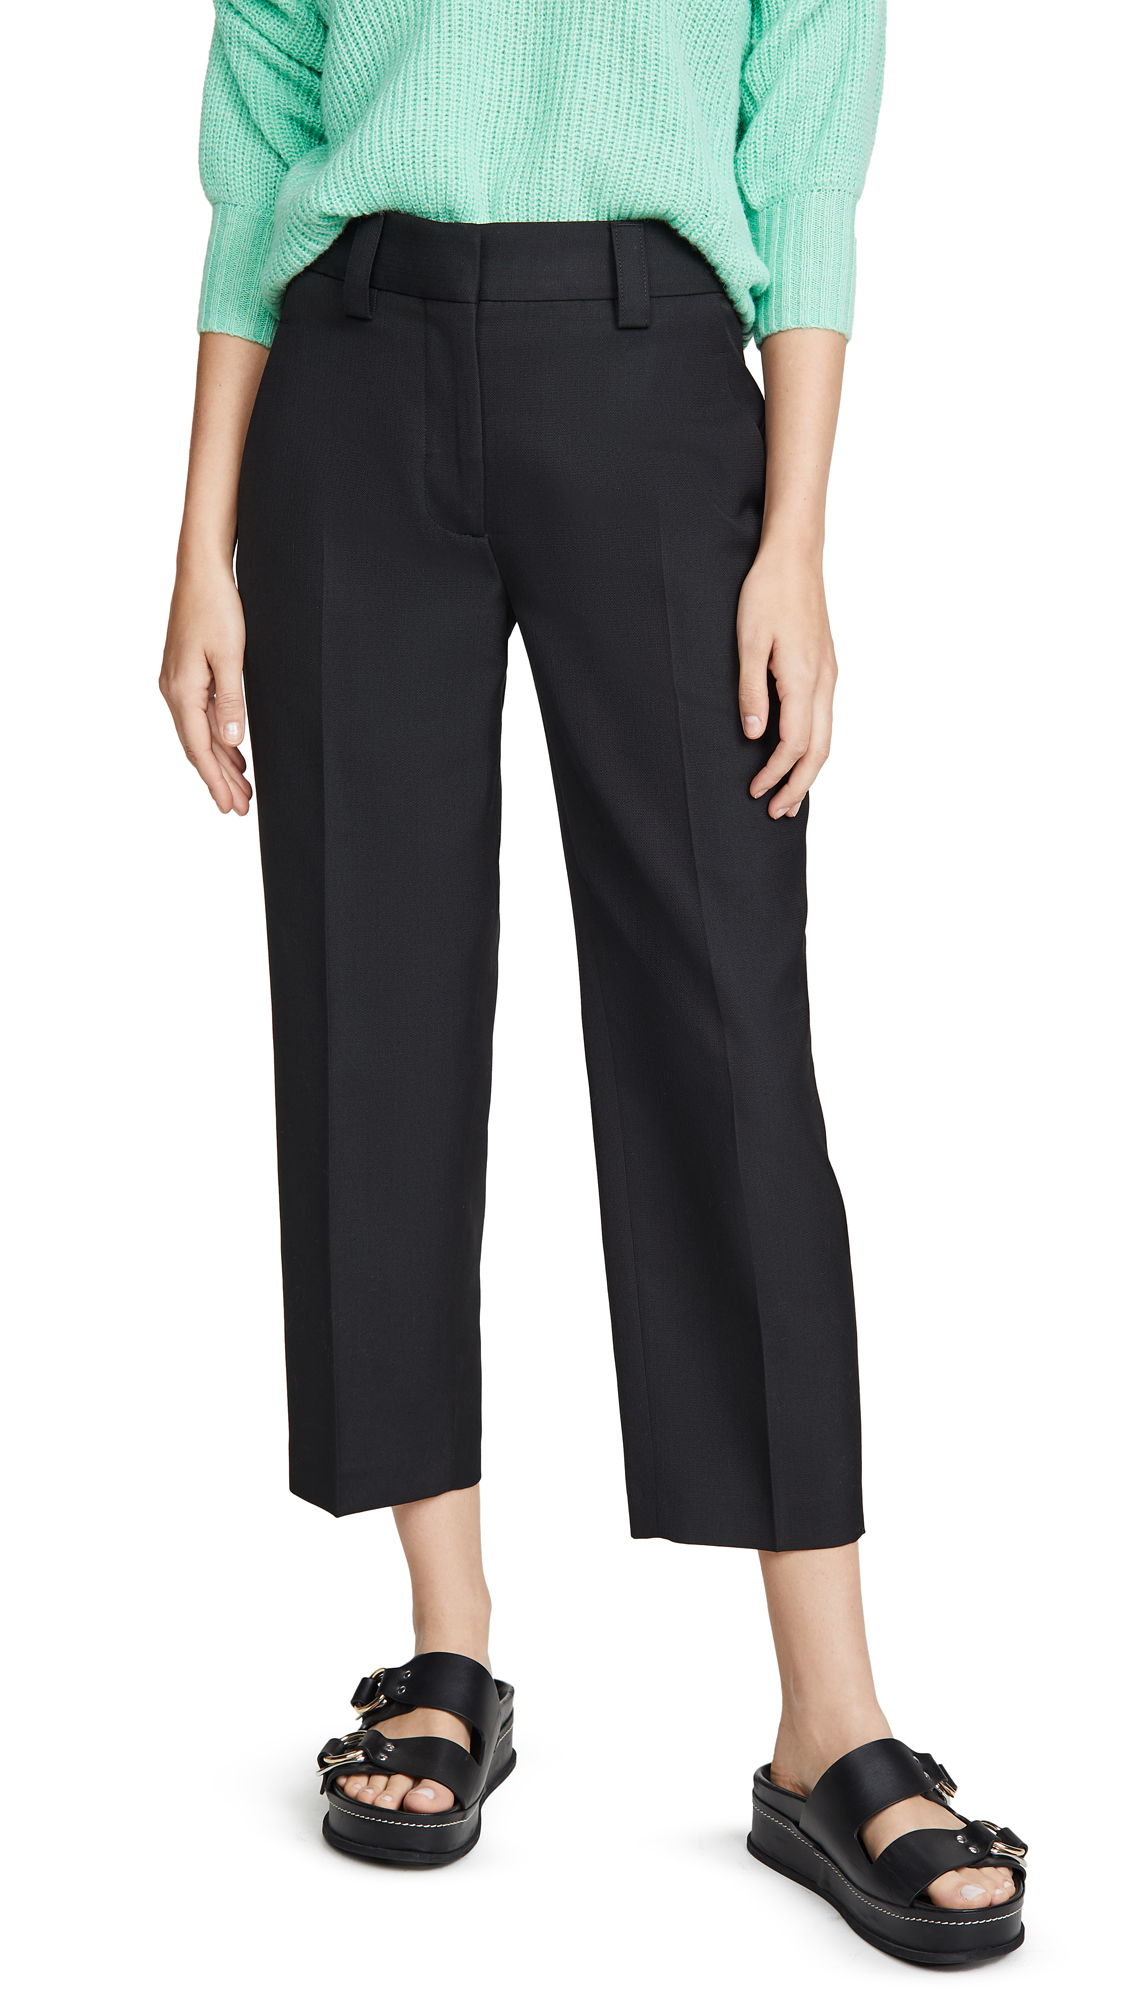 Acne Studios Suiting Trousers - Black